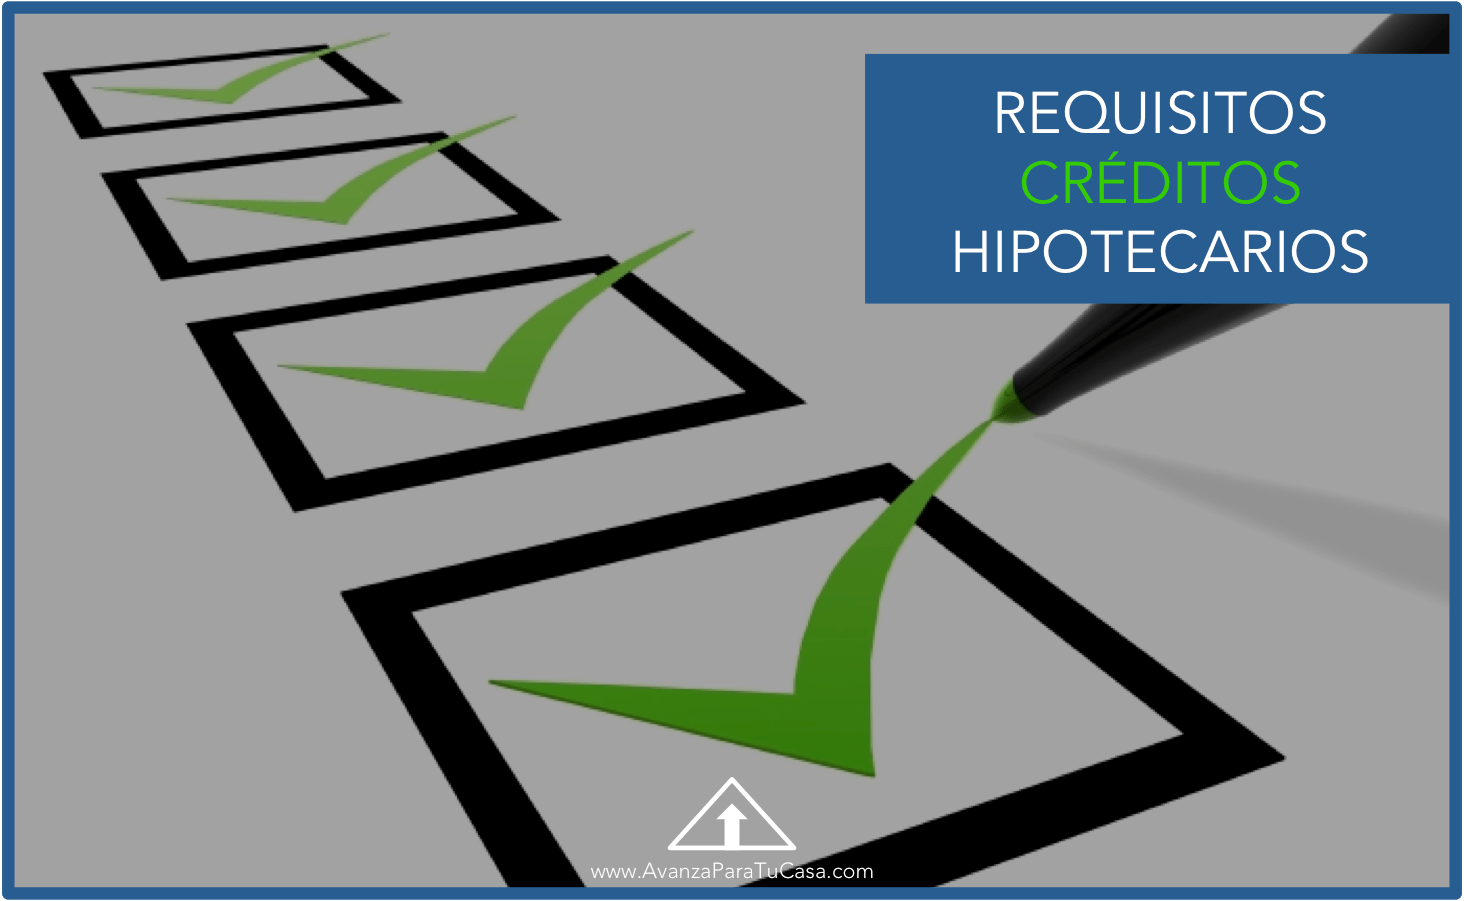 Requisitos Para Una Hipoteca Requisitos Para Tramitar Tu Crédito Hipotecario Soc Asesores